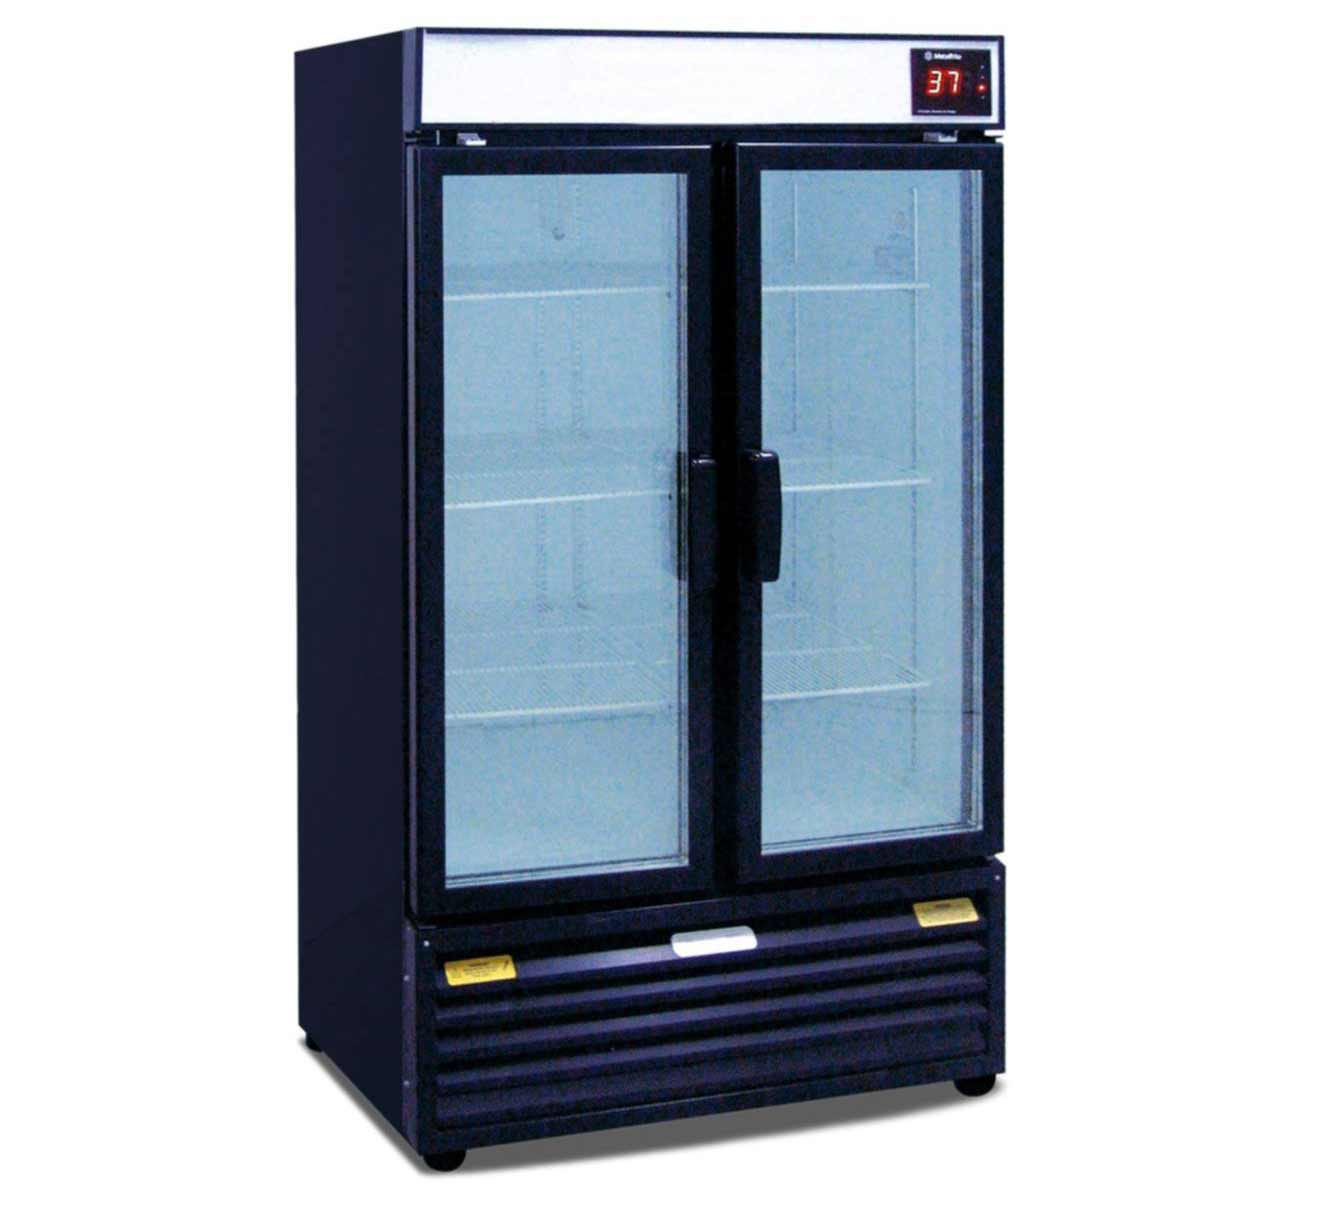 Prima beverage refrigerator glass door for home